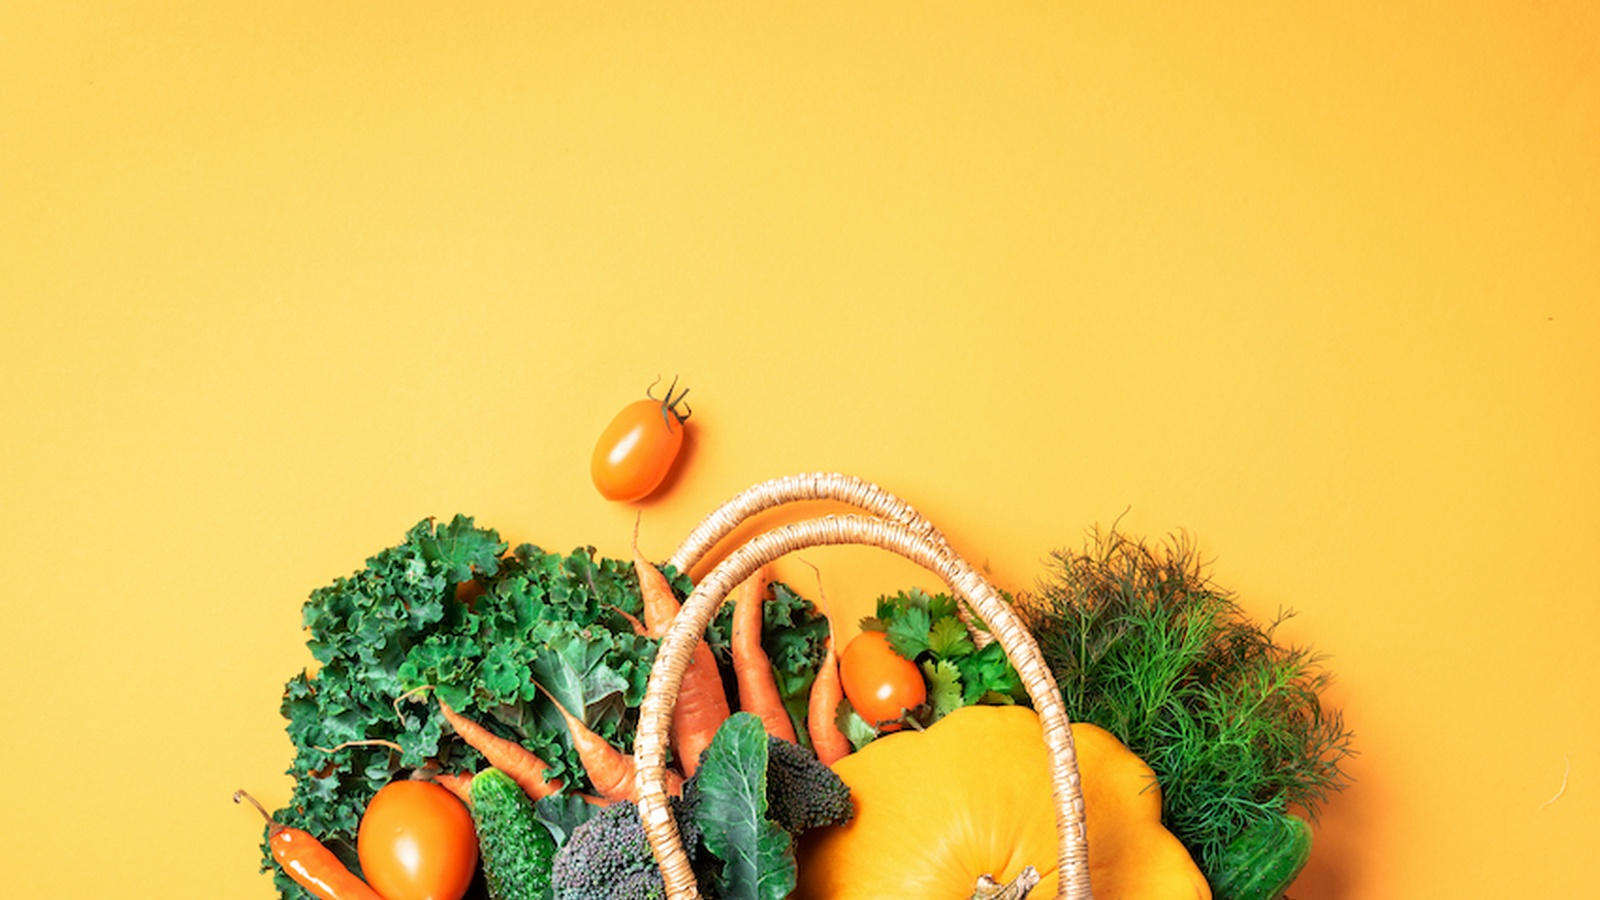 Eco Eating: How To Live and Eat More Sustainably